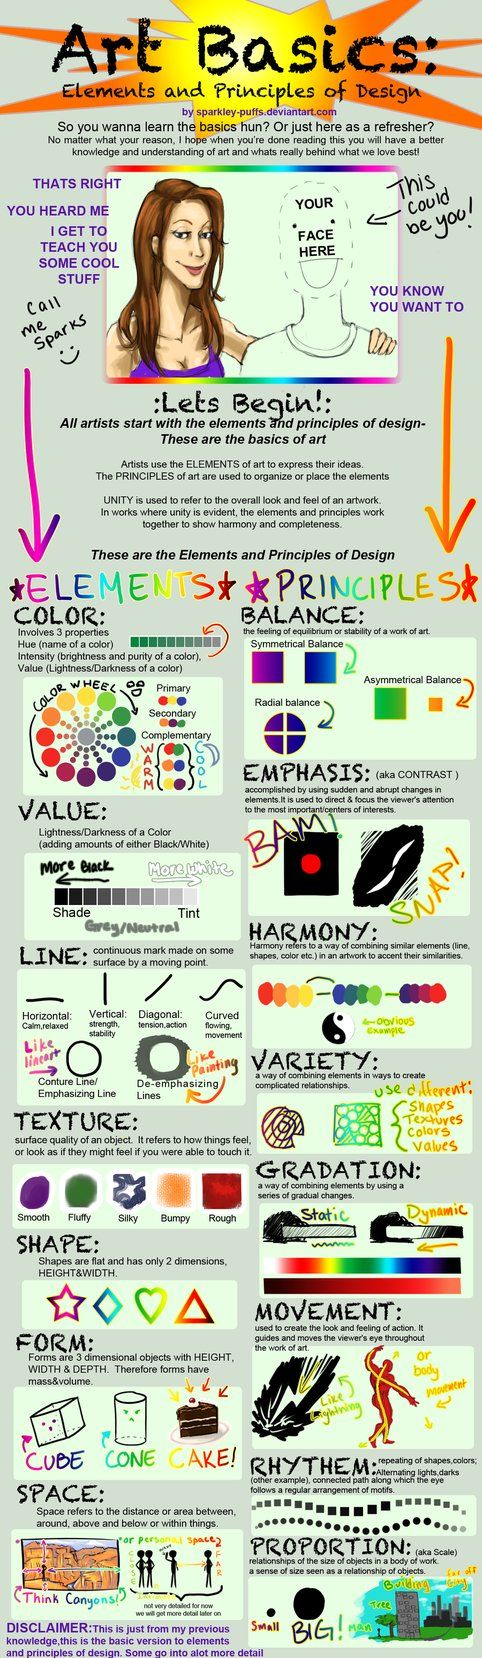 Three Elements Of Design : Elements principles of design by thecuddlykoalawhale on